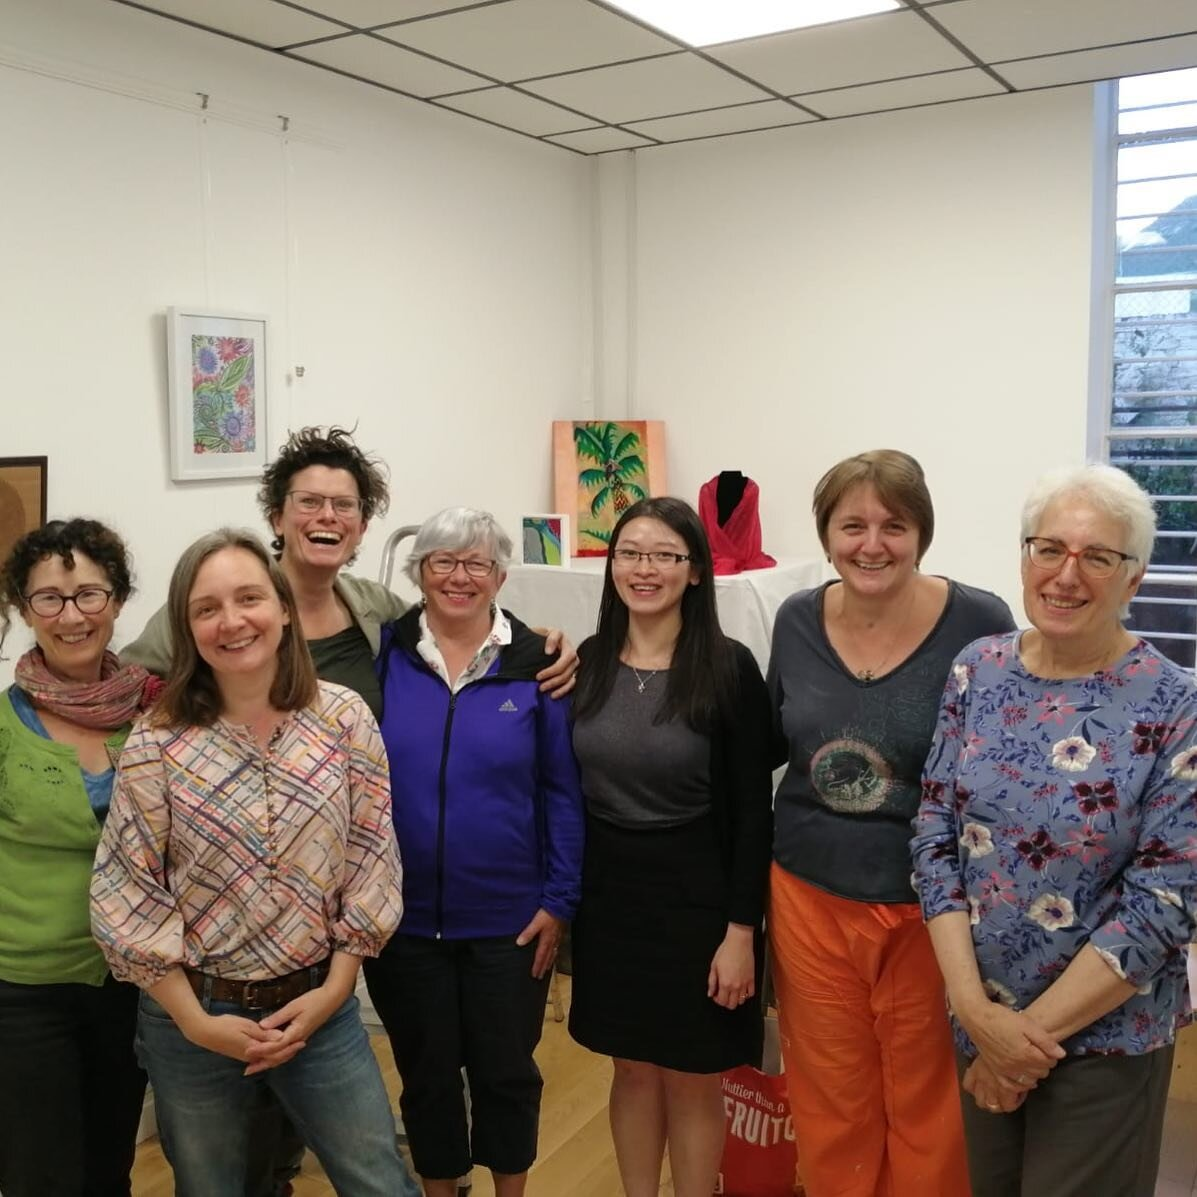 Barnet Artists taking a break from hanging our exhibition at Compass Residential